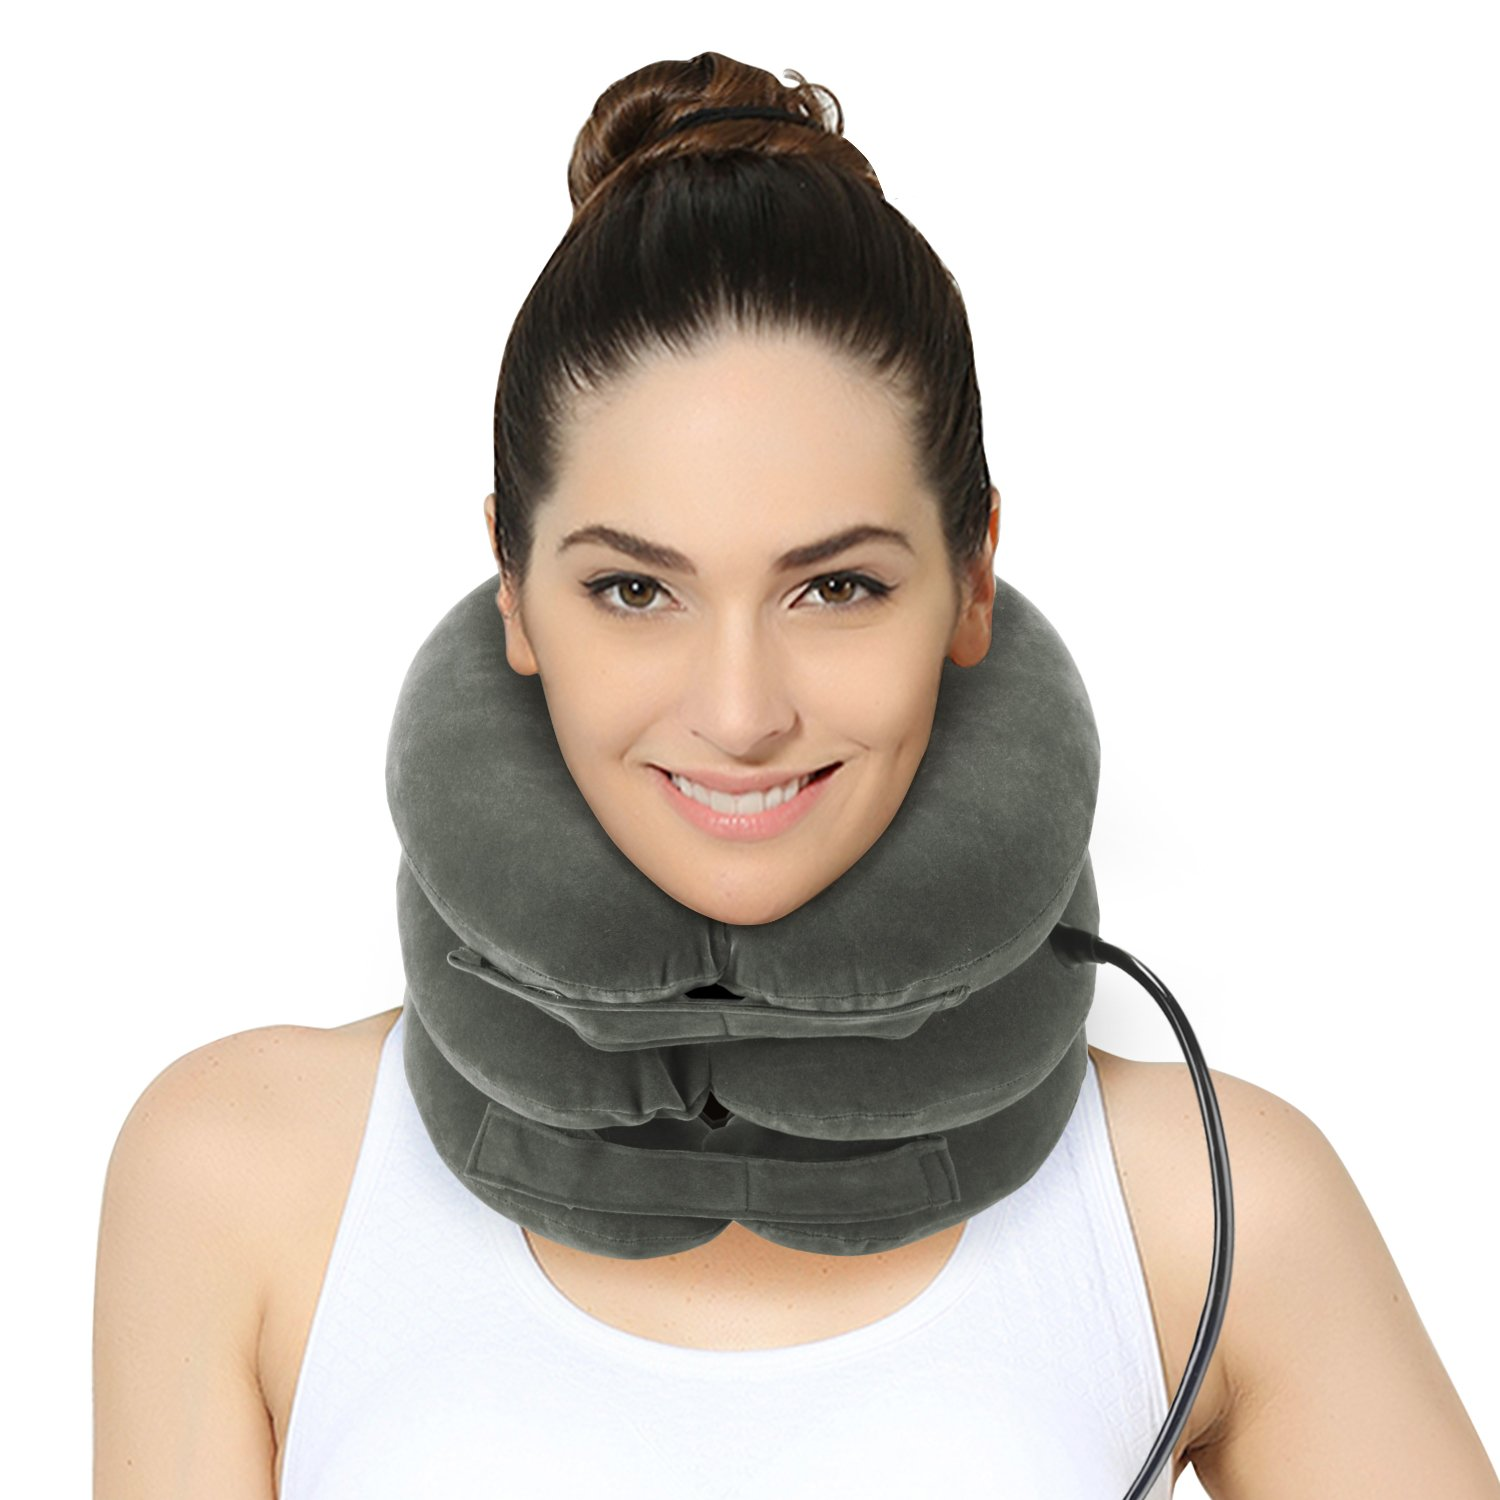 P PURNEAT Cervical Neck Traction Device – Instant Pain Relief for Chronic Neck and Shoulder Pain [2018 Upgraded] Effective Alternate Pain Relieving Remedy